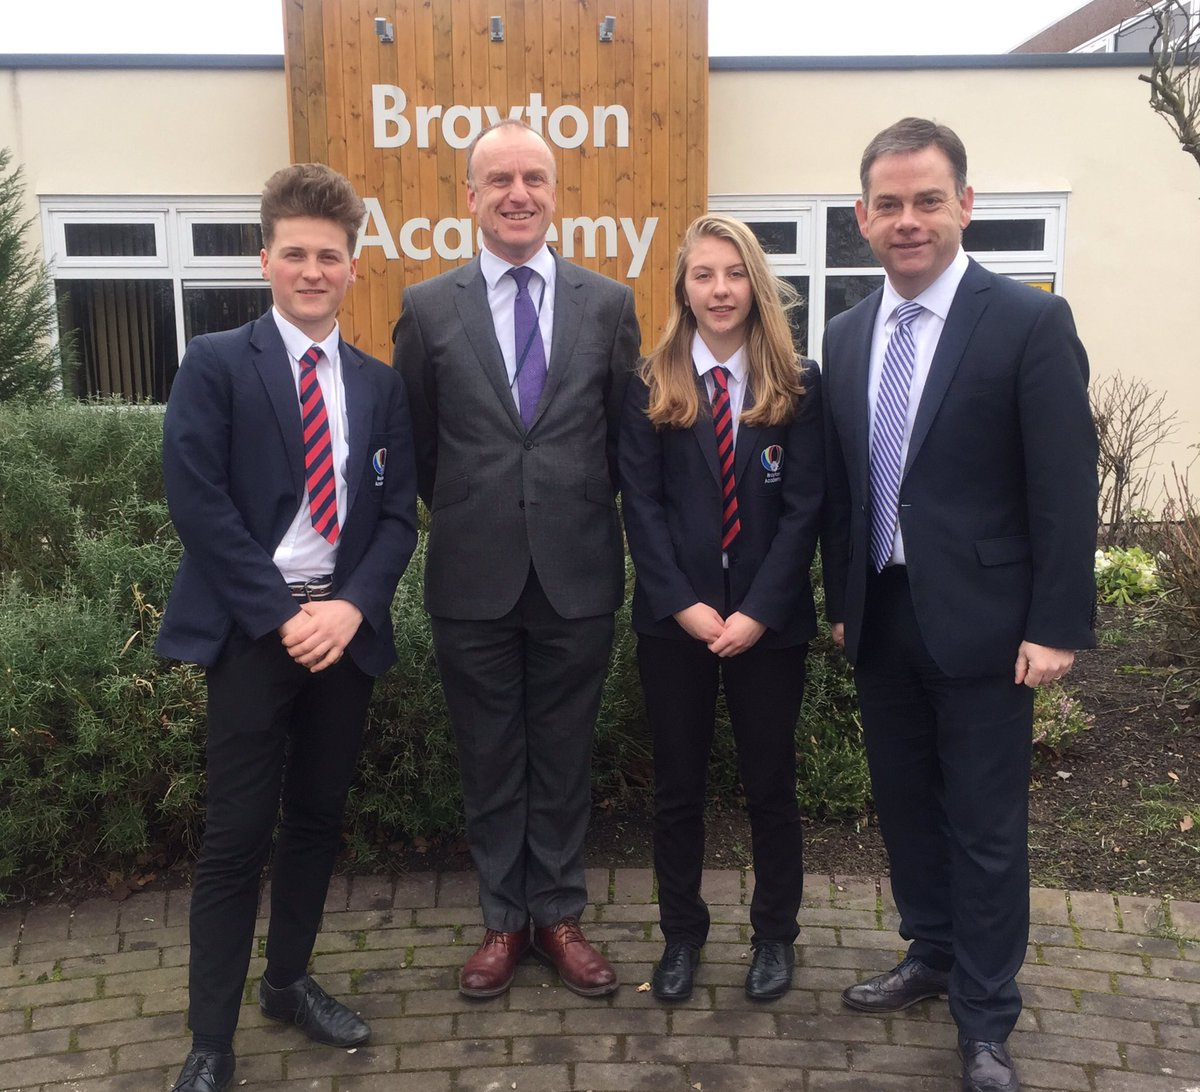 Enjoyed my visit to @braytonacademy1 to see the progress being made by the school. Very impressed with what I saw #Brayton #selby